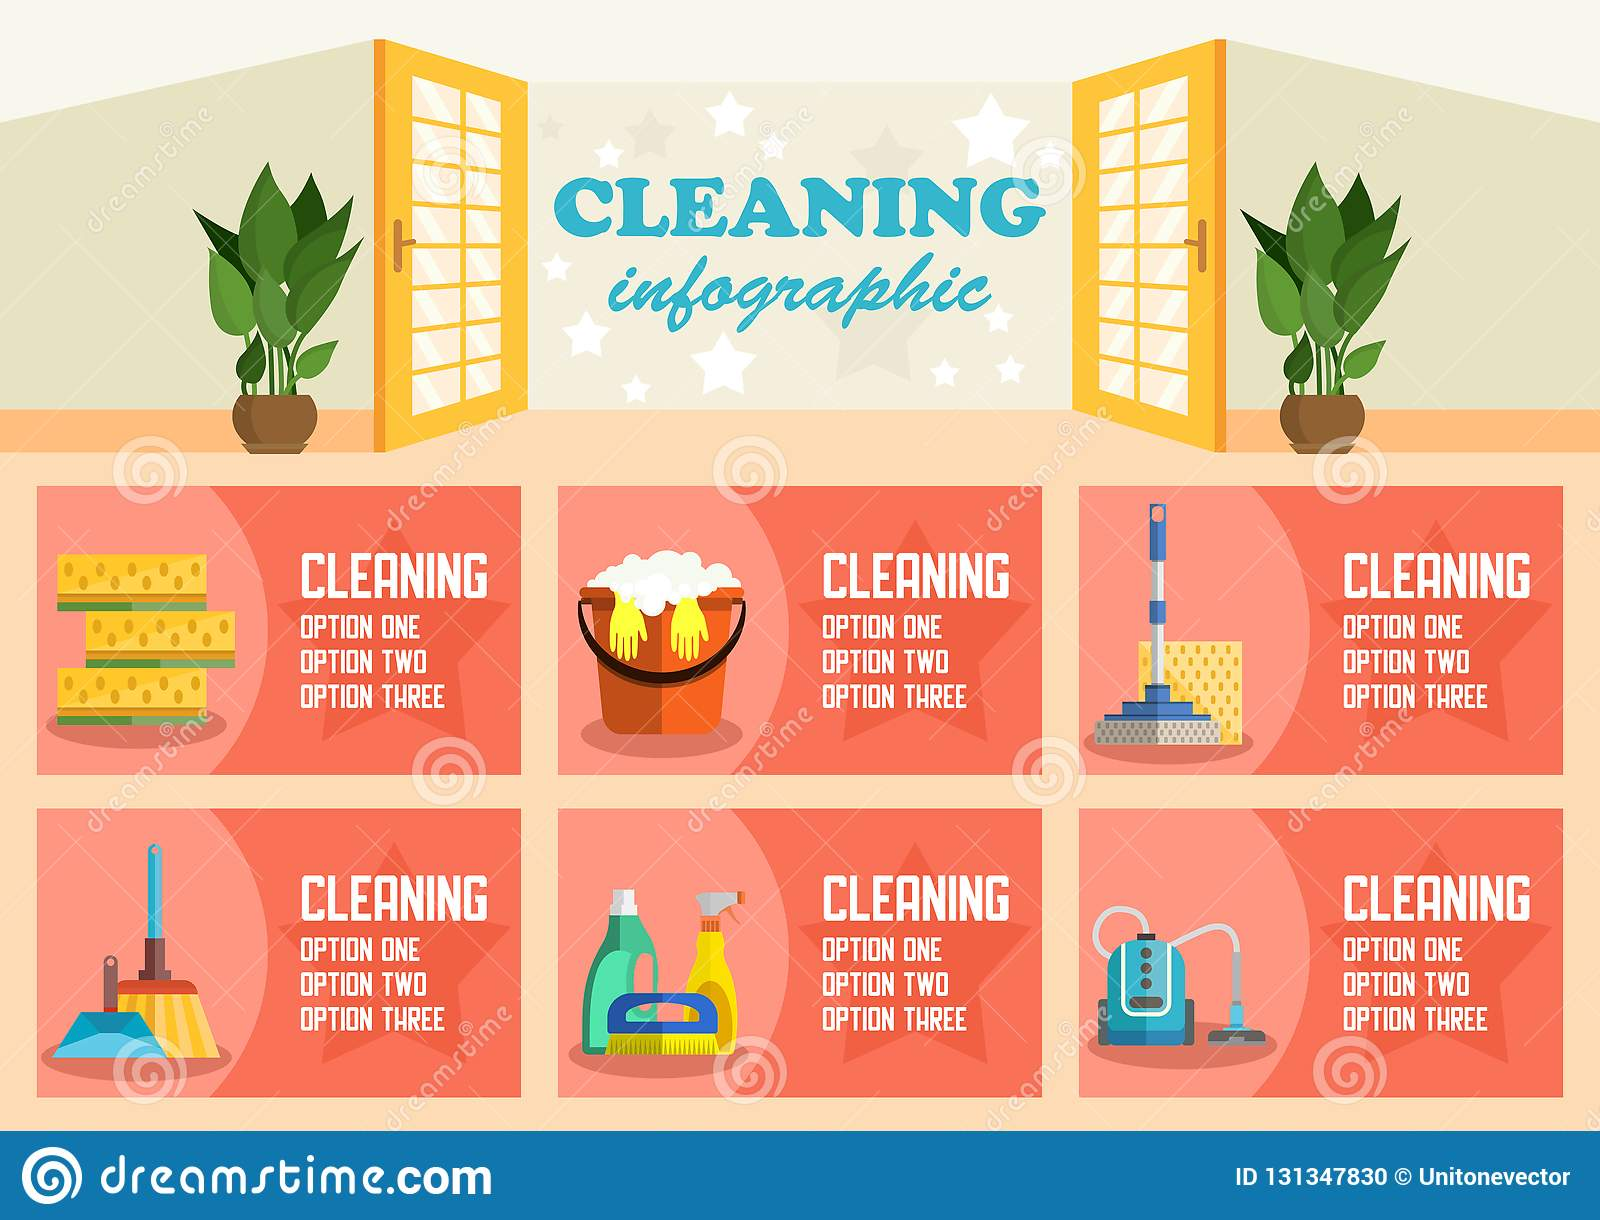 cleaning-infographic-dry-options-concept